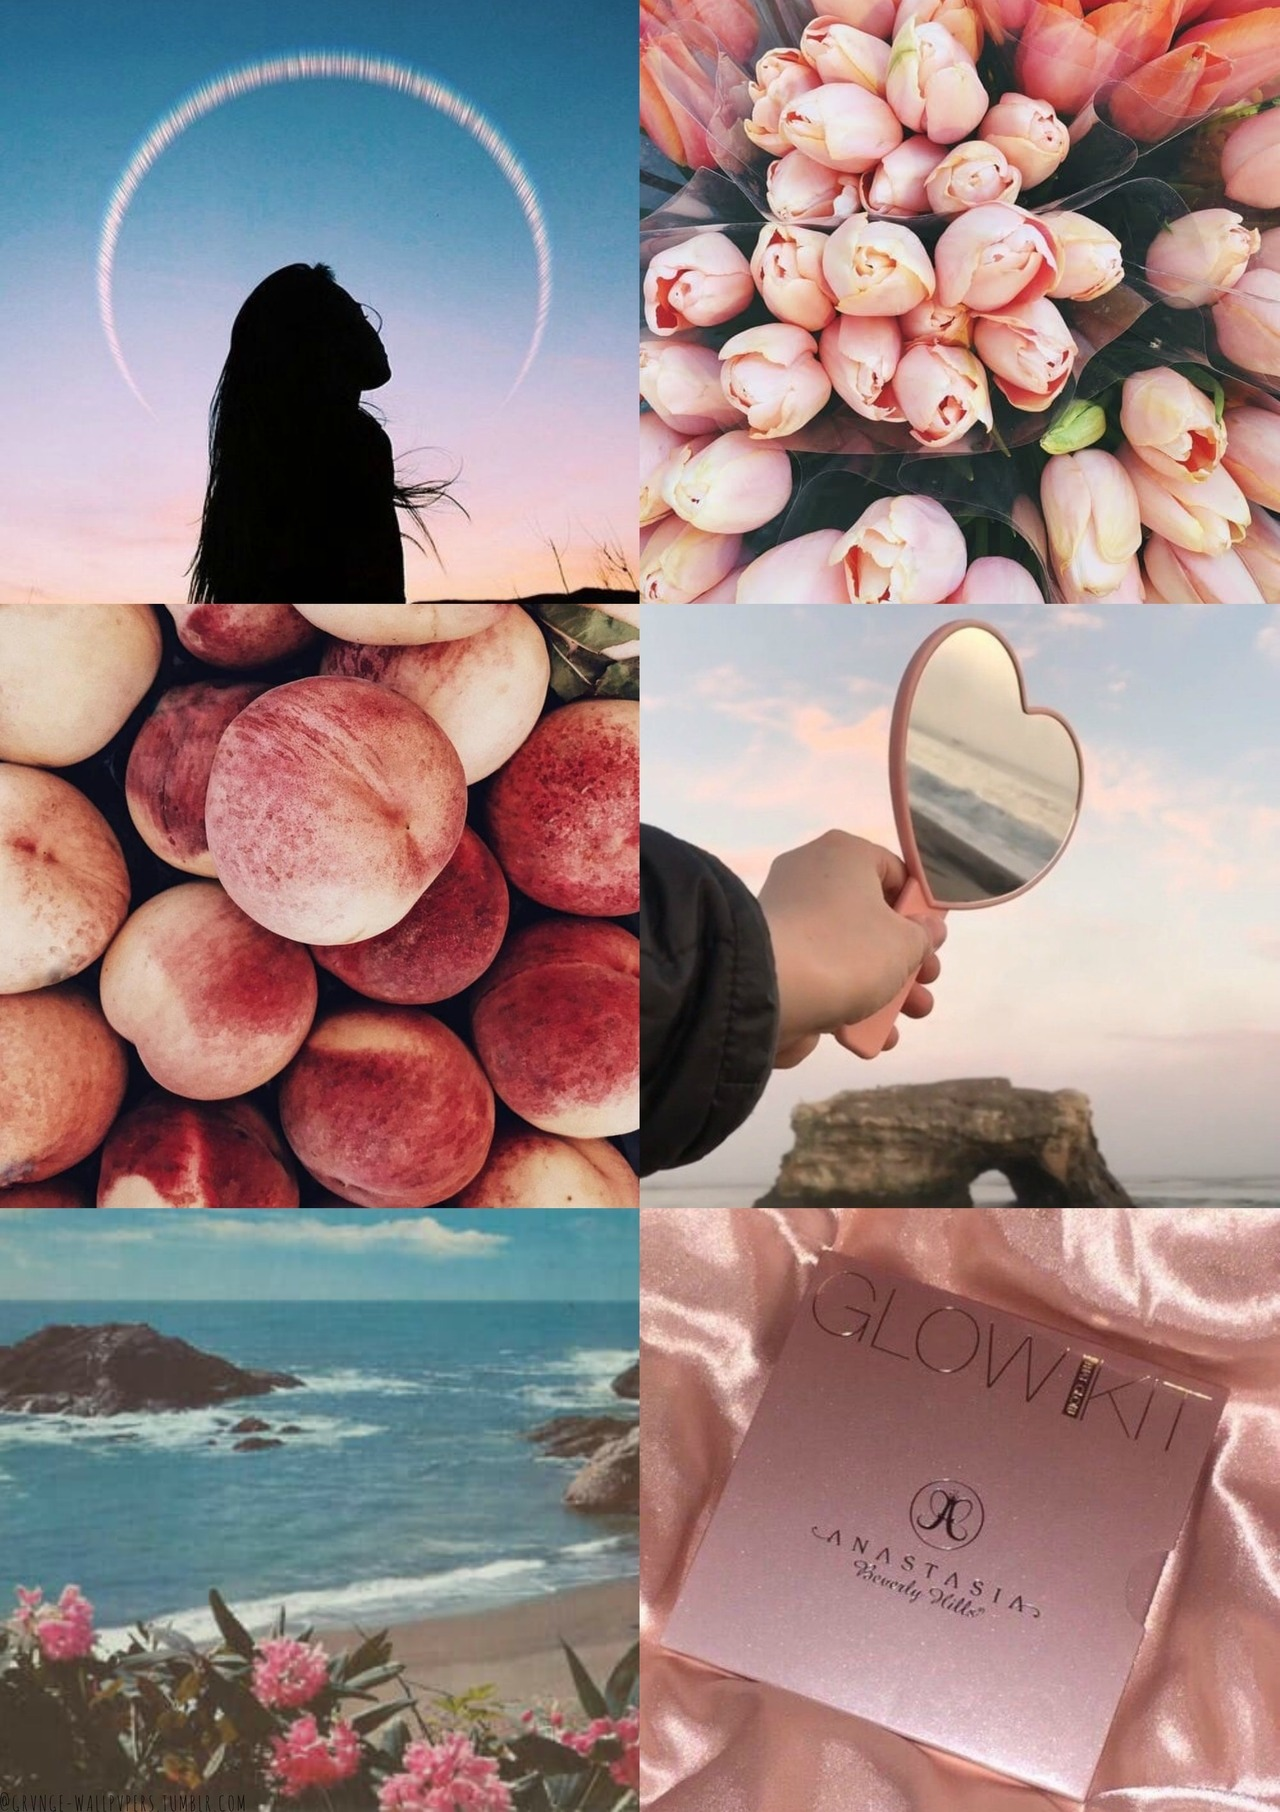 Pink Aesthetic Photography Grunge Wallpaper Lockscreen Fancy